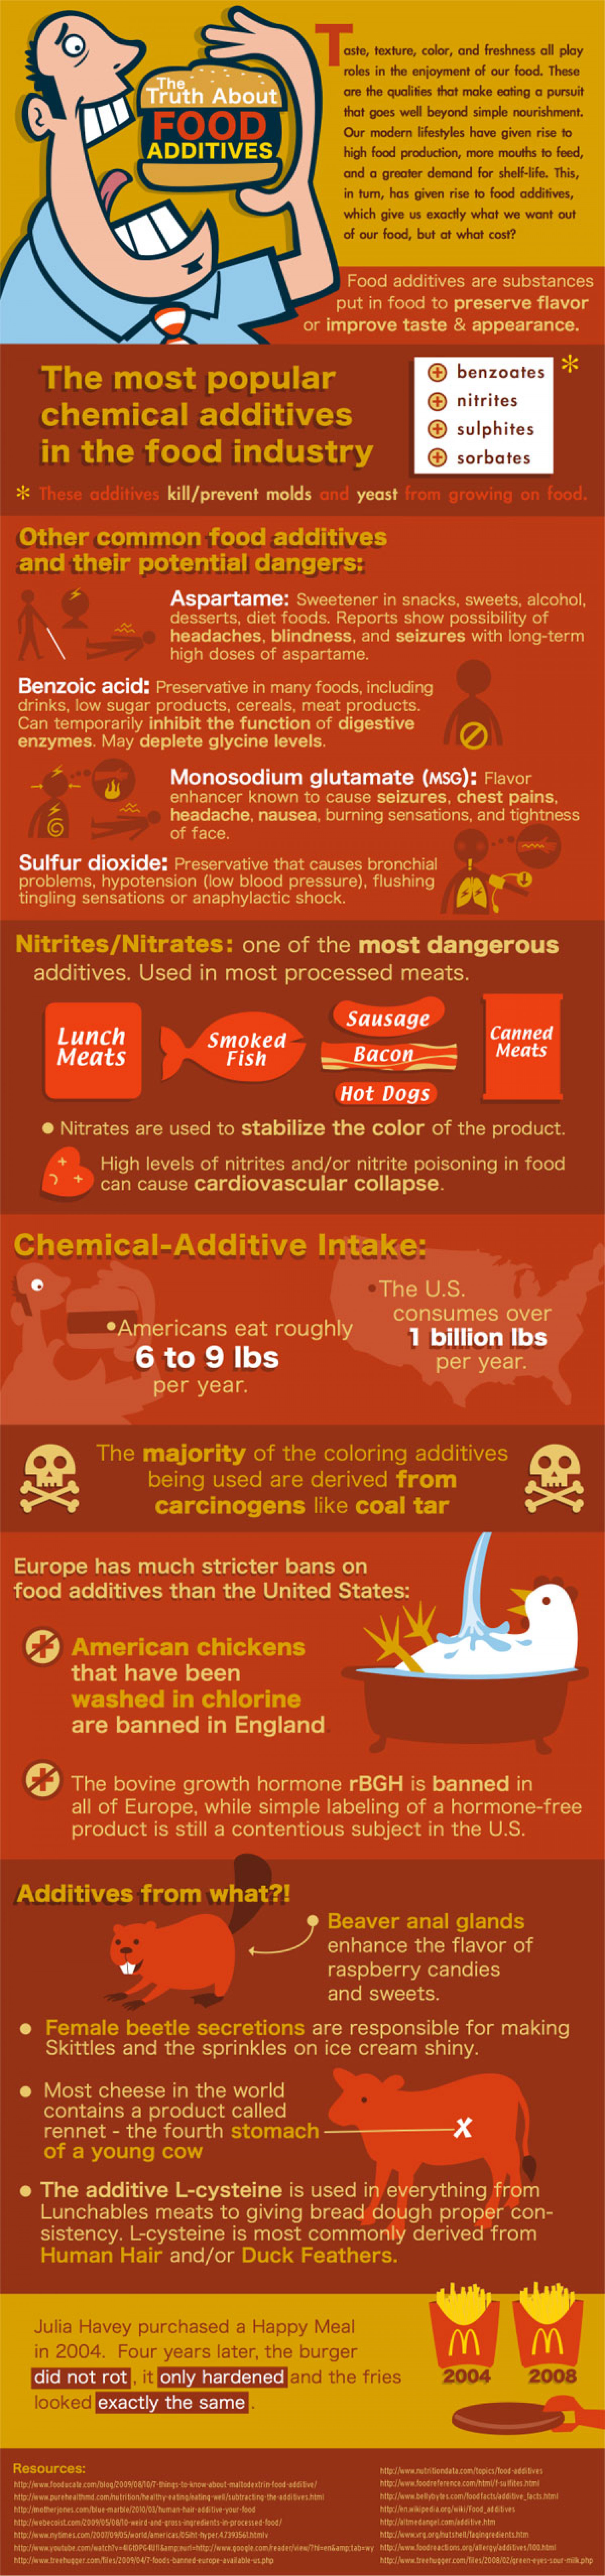 The Truth About Food Additives Infographic